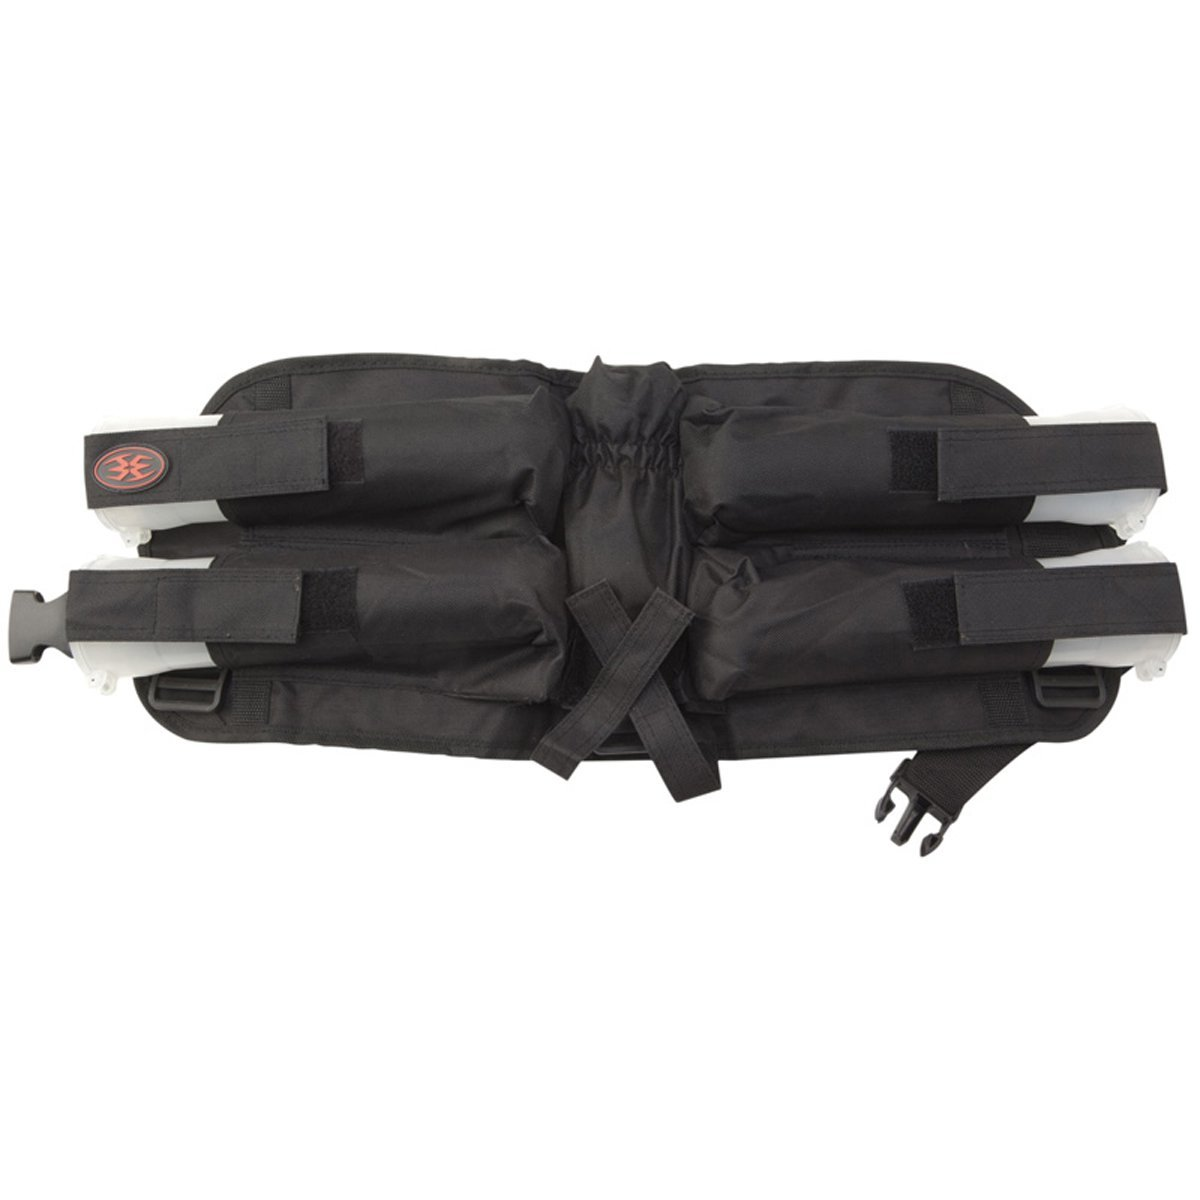 Empire 4+1 Paintball Harness with Clip Belt, Empire Harness 4+1 Pack By Empire Paintball by